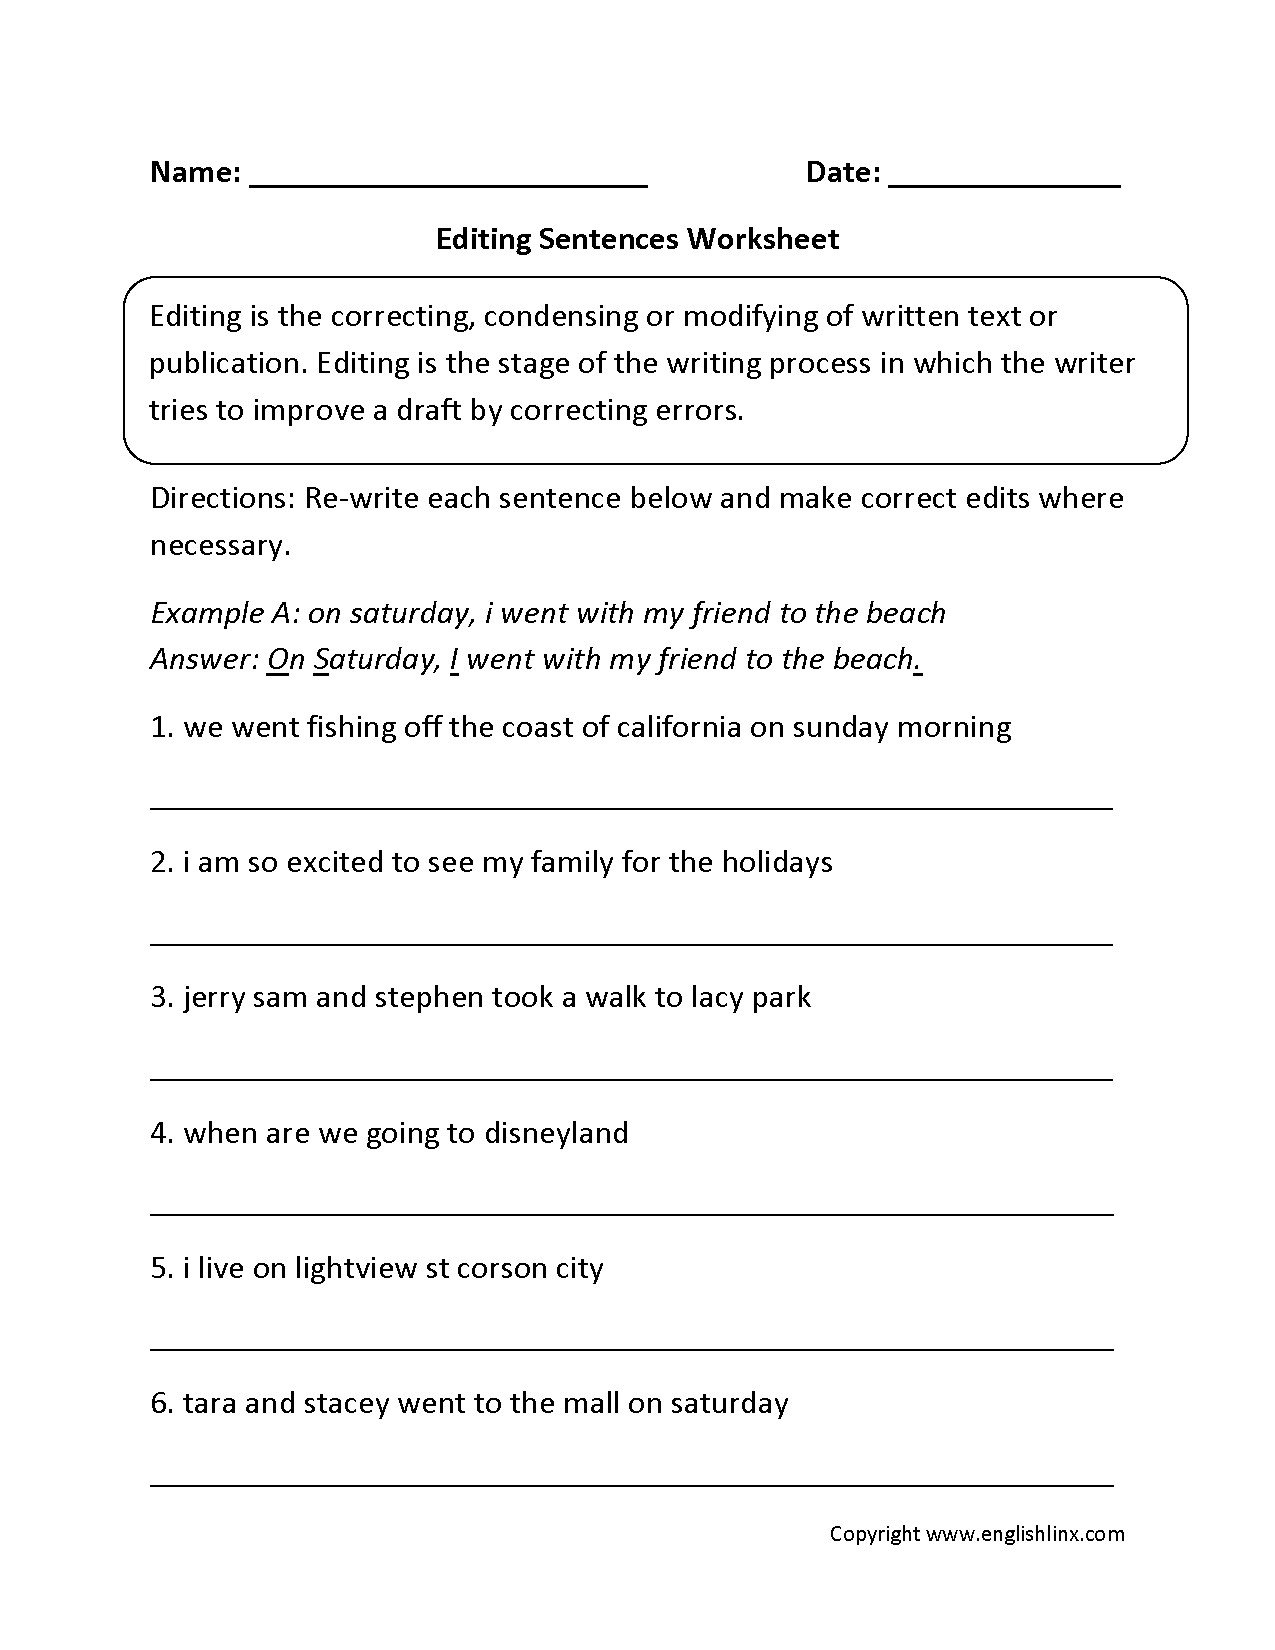 writing worksheets editing worksheets 16